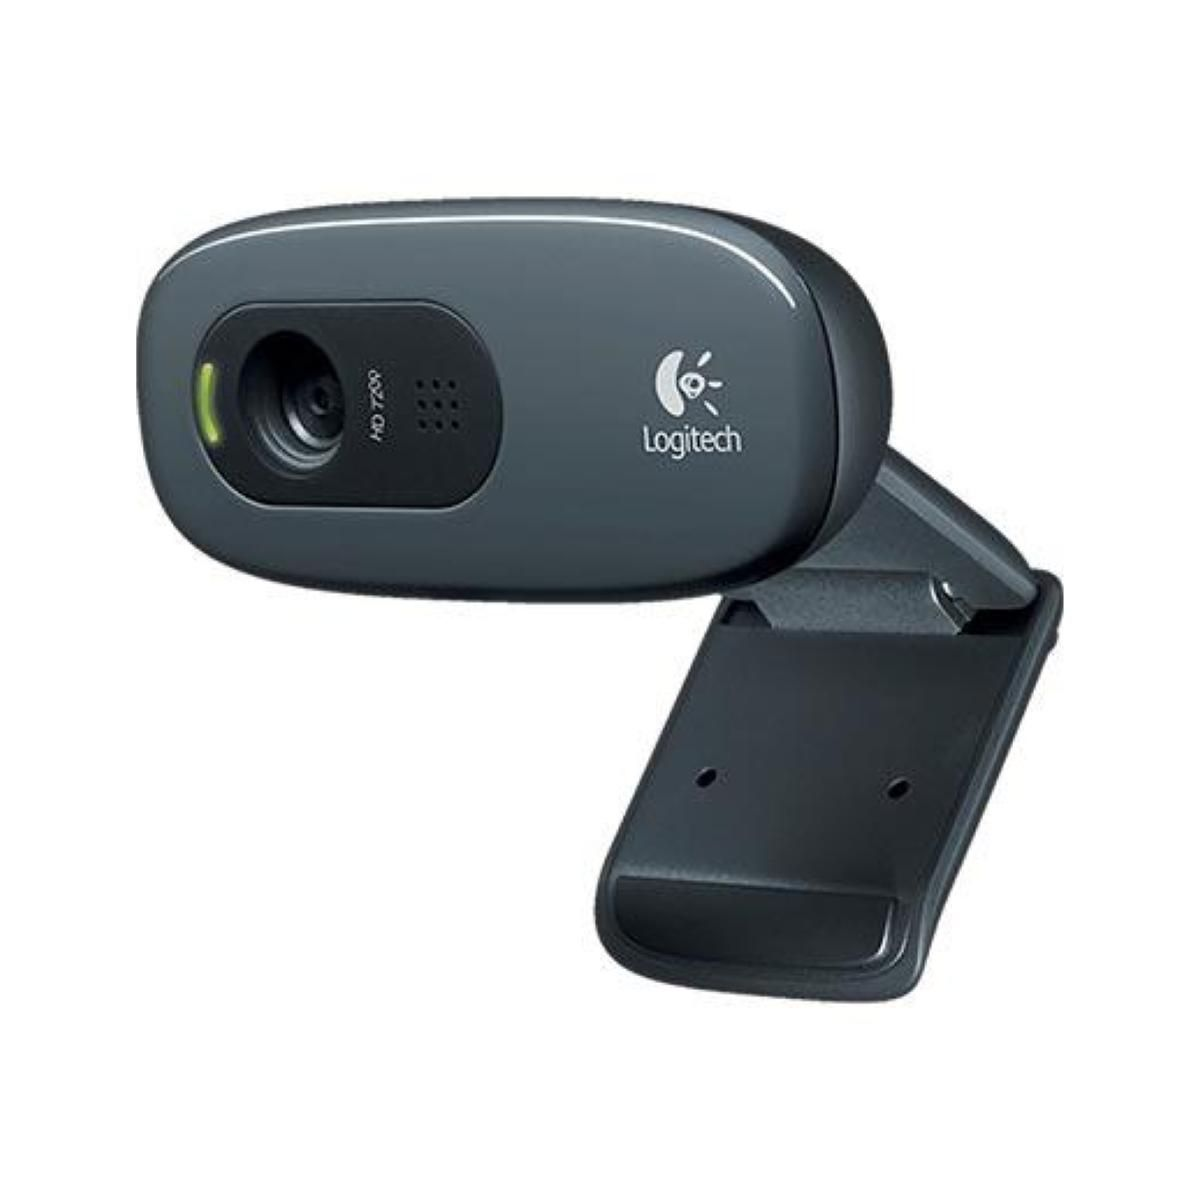 WebCam HD Com Microfone C270 Logitech